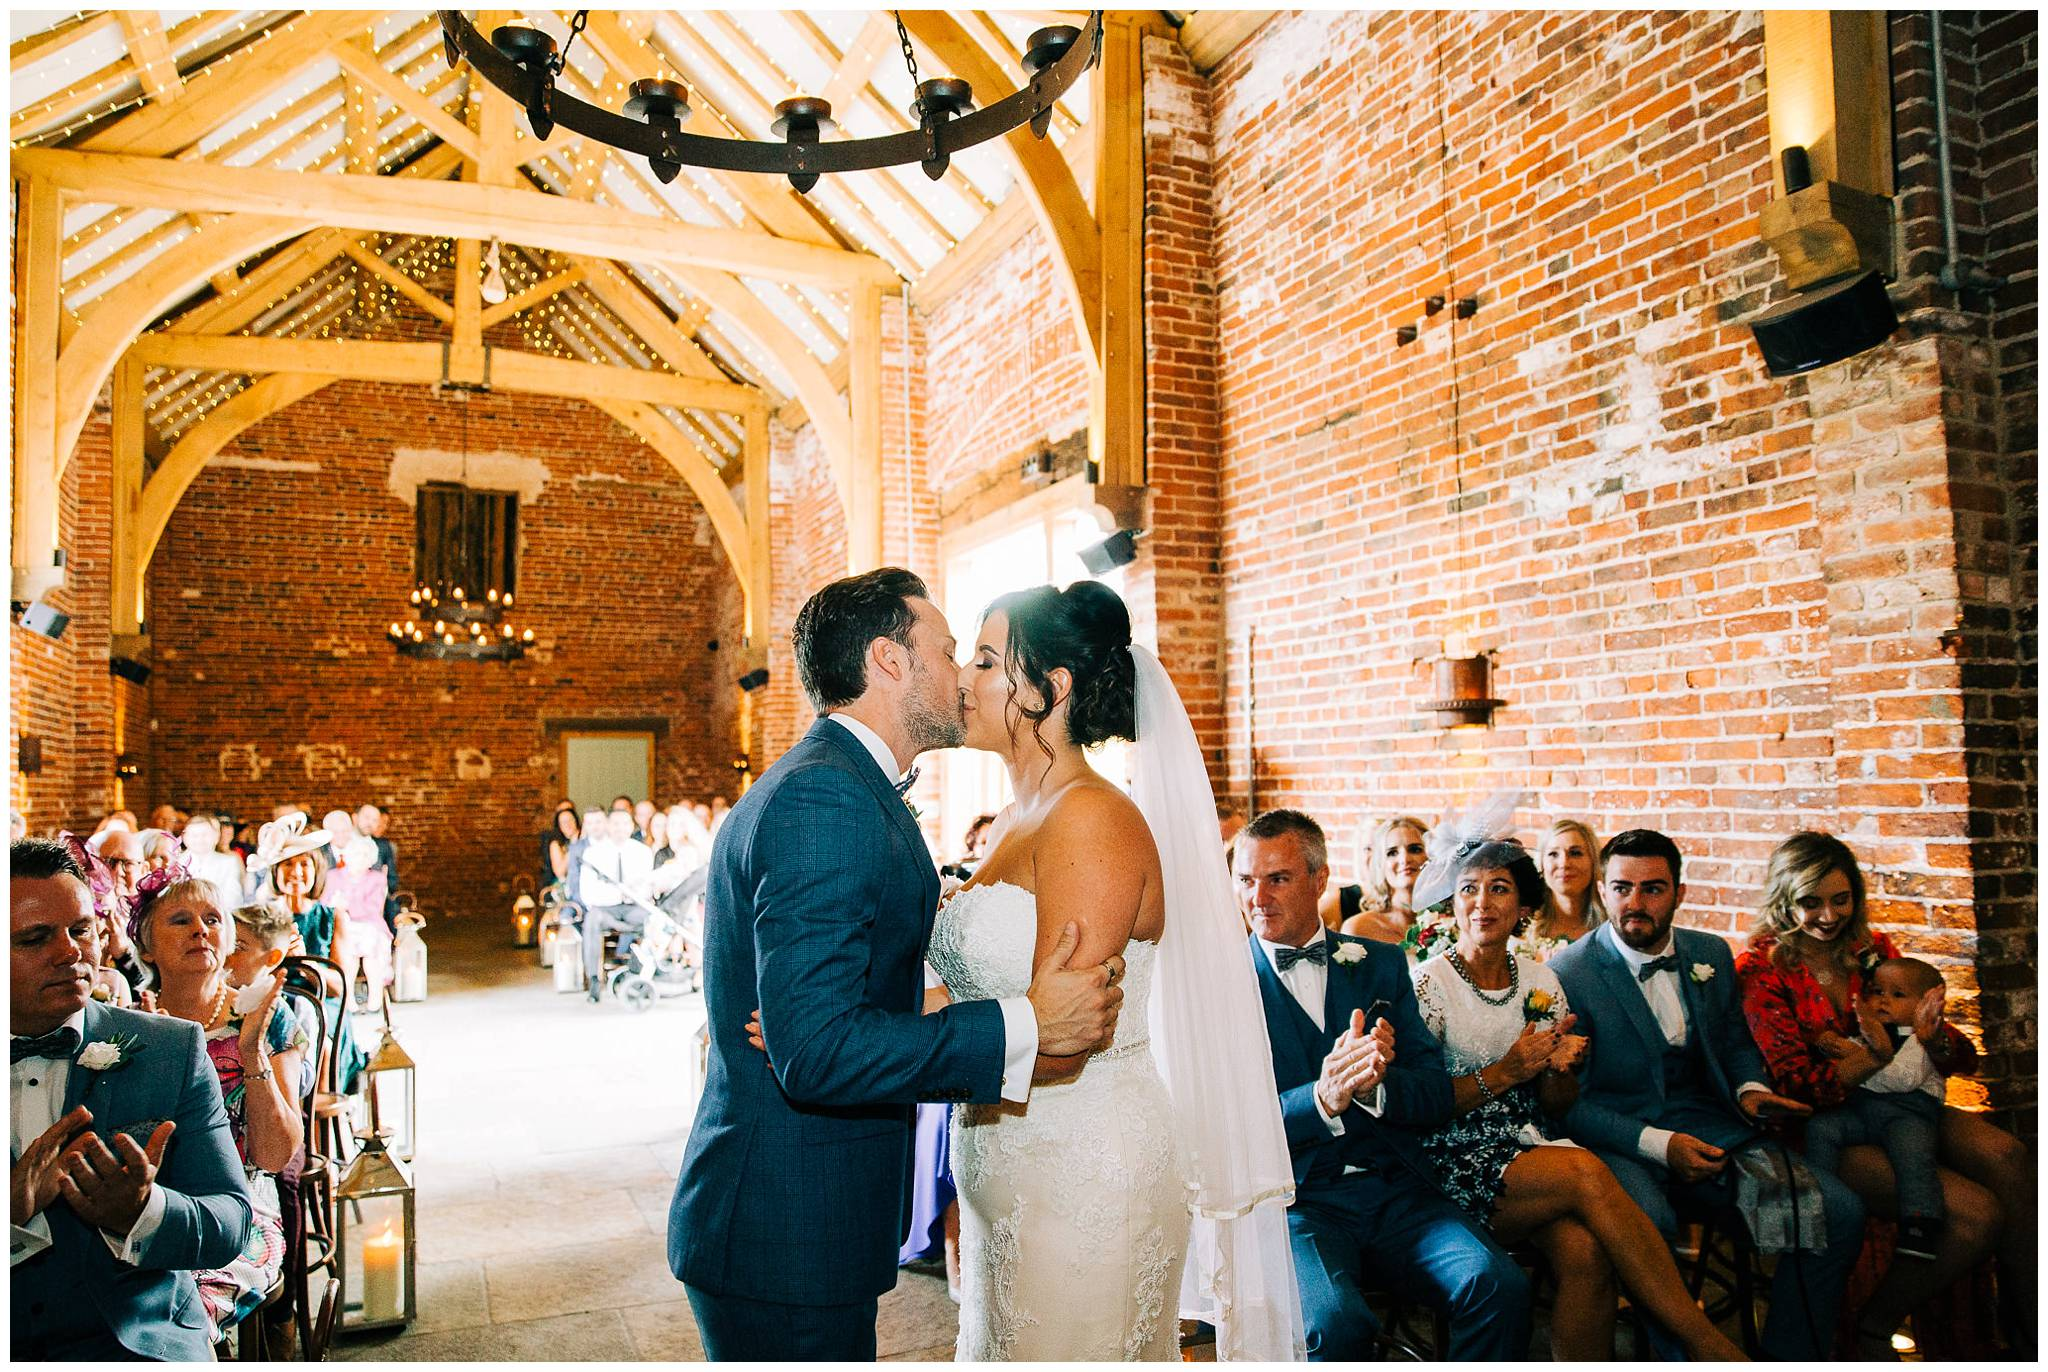 Chic Summer Wedding at Hazel Gap Barn - Nottinghamshire Photographer24.jpg